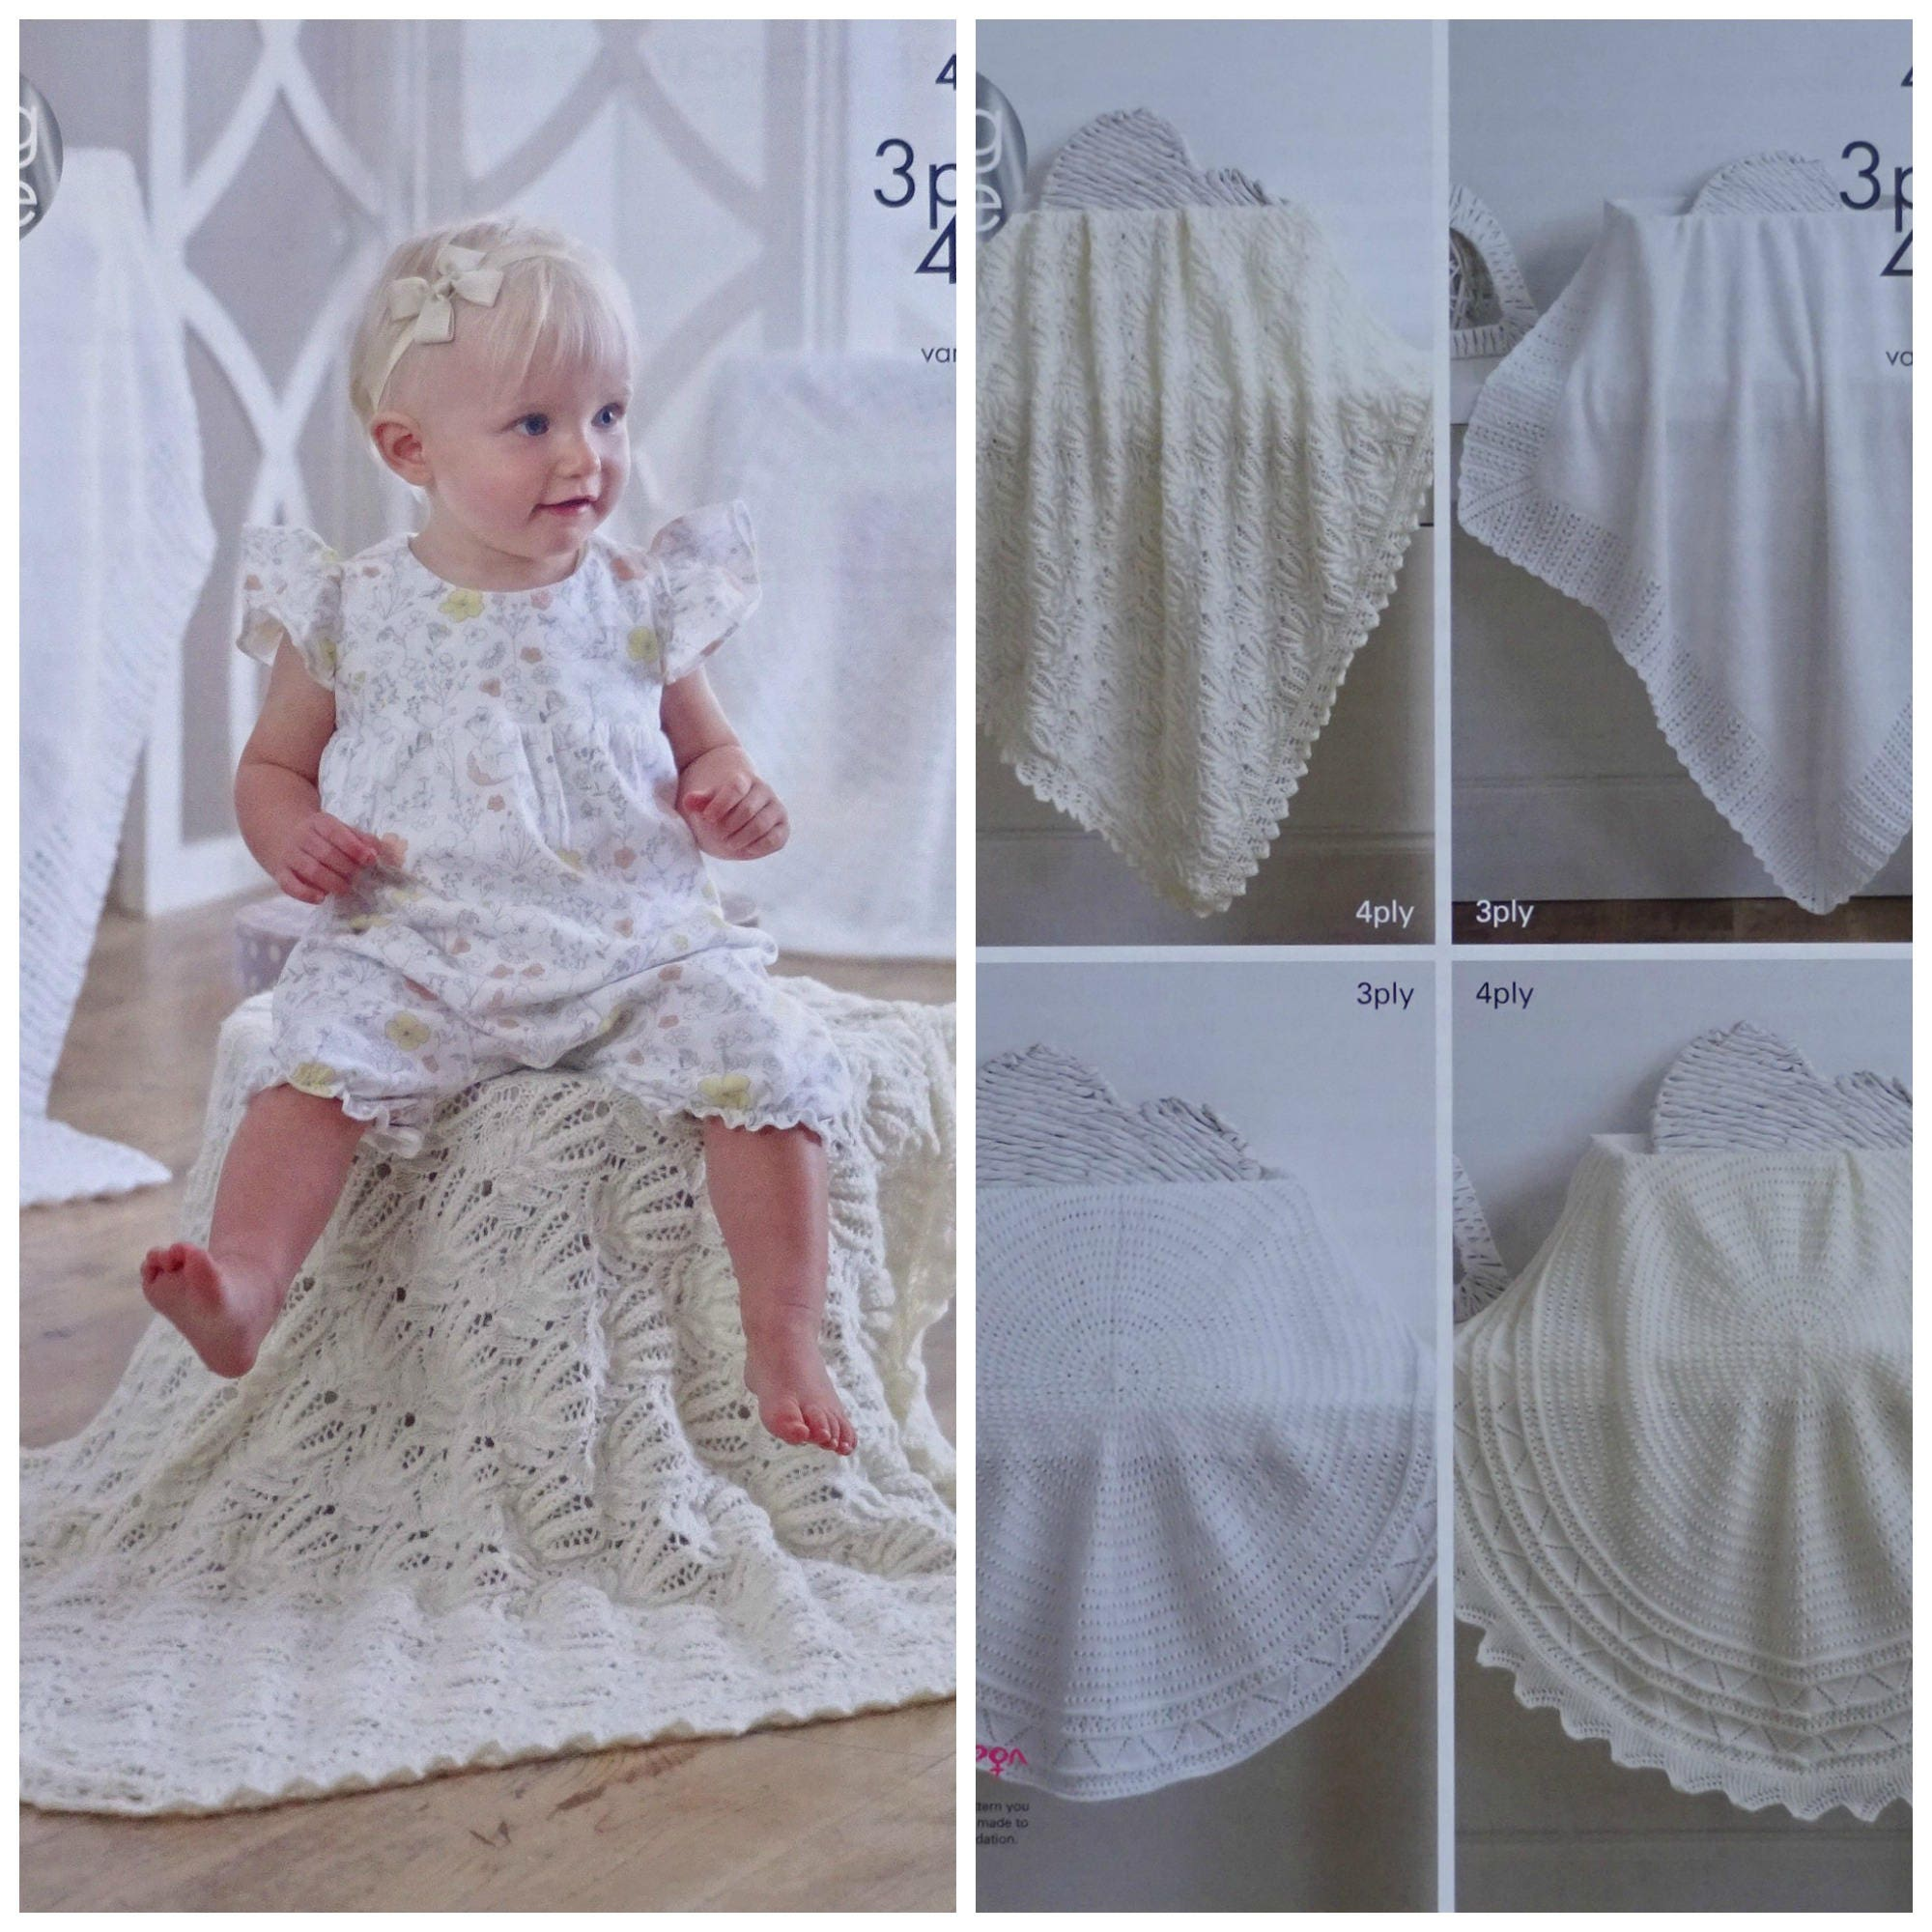 Baby Blanket Knitting Pattern K4943 Babies Circular or Square Lace ...